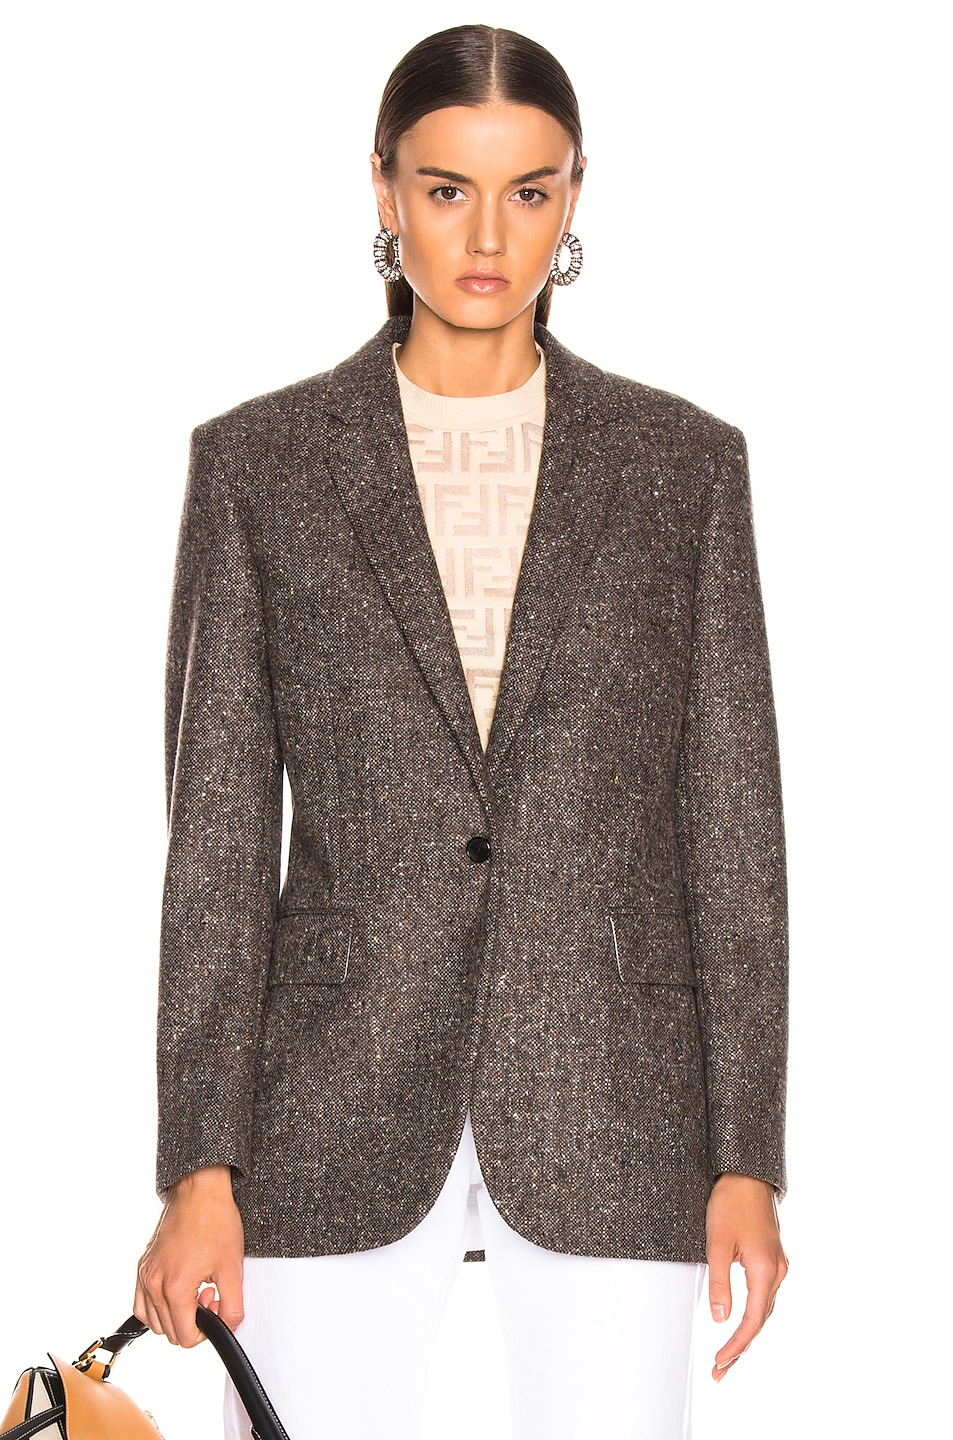 Image 1 of CALVIN KLEIN 205W39NYC Tailored Blazer in Sepia Grey Black